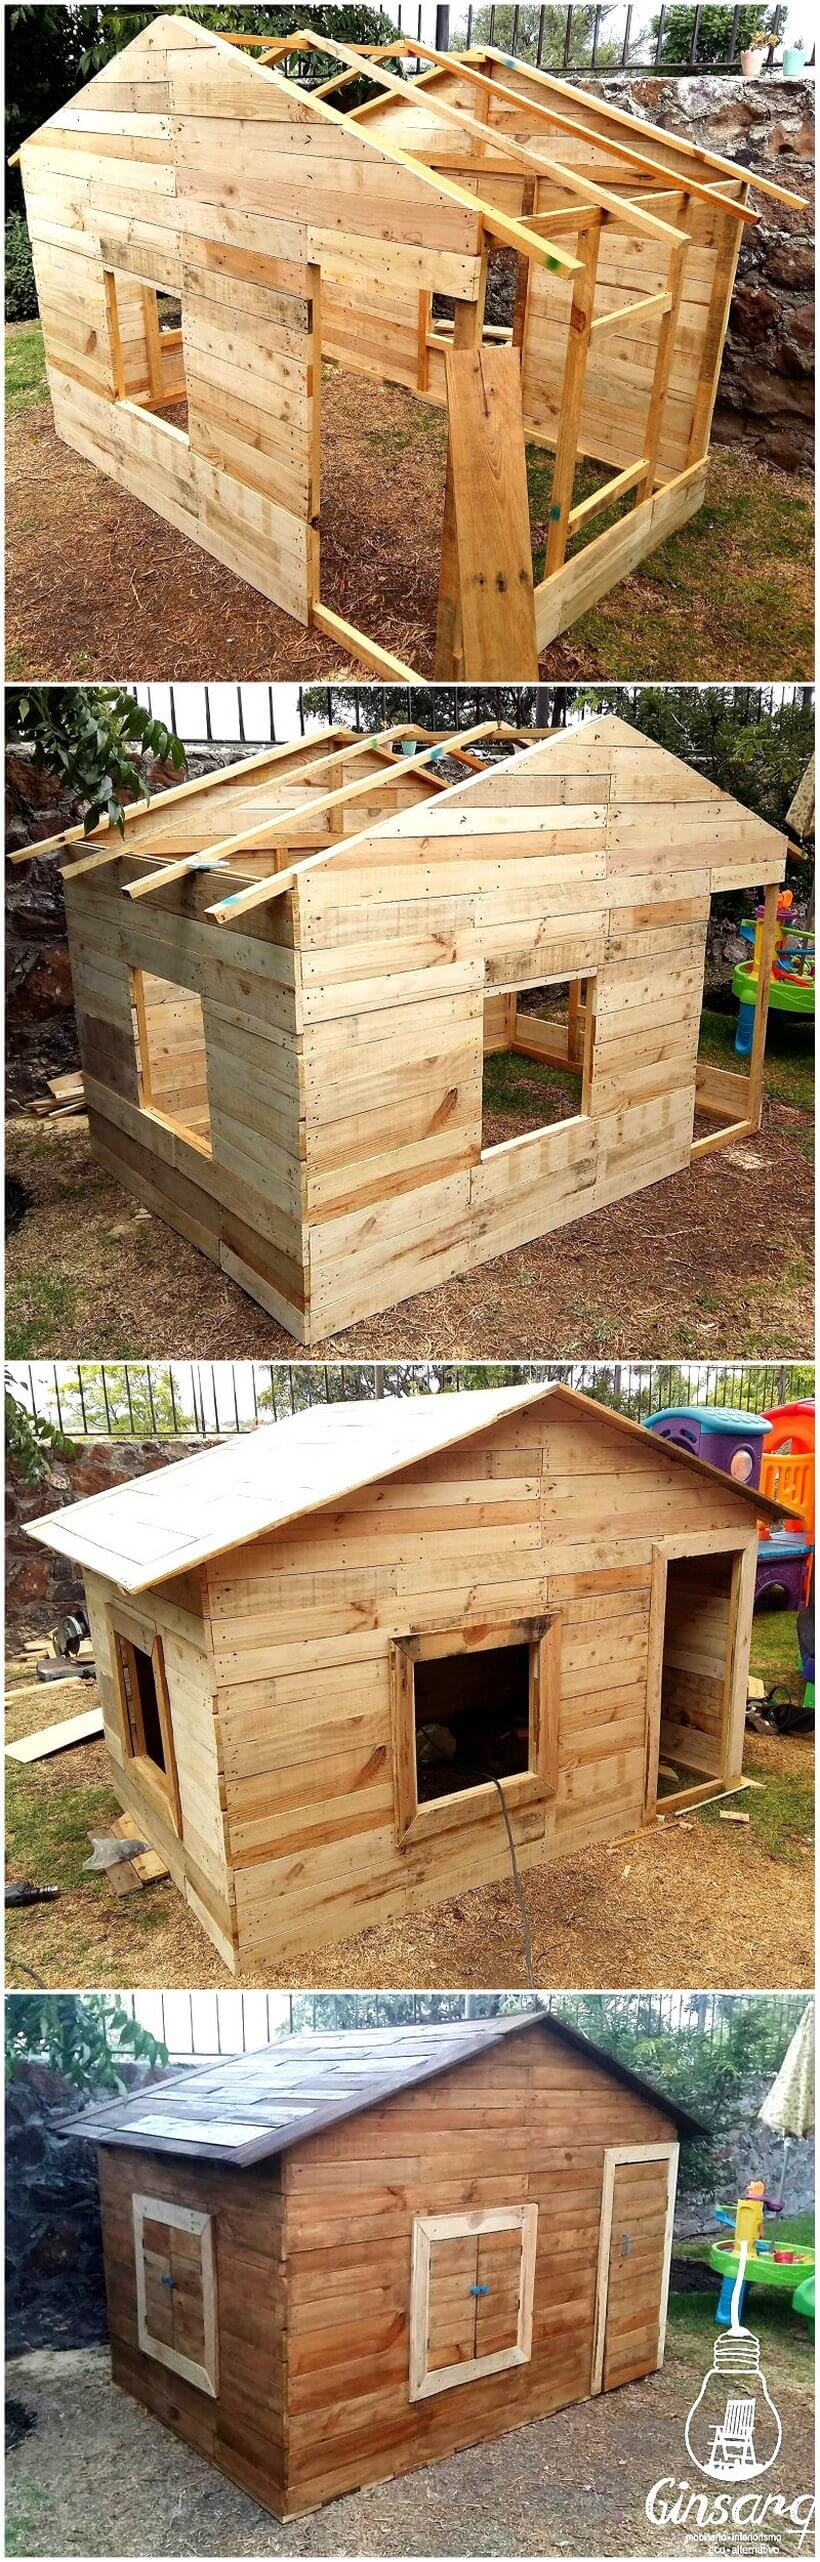 50 Amazing DIY Ideas For Wood Pallet Repurposing | Page 4 ...